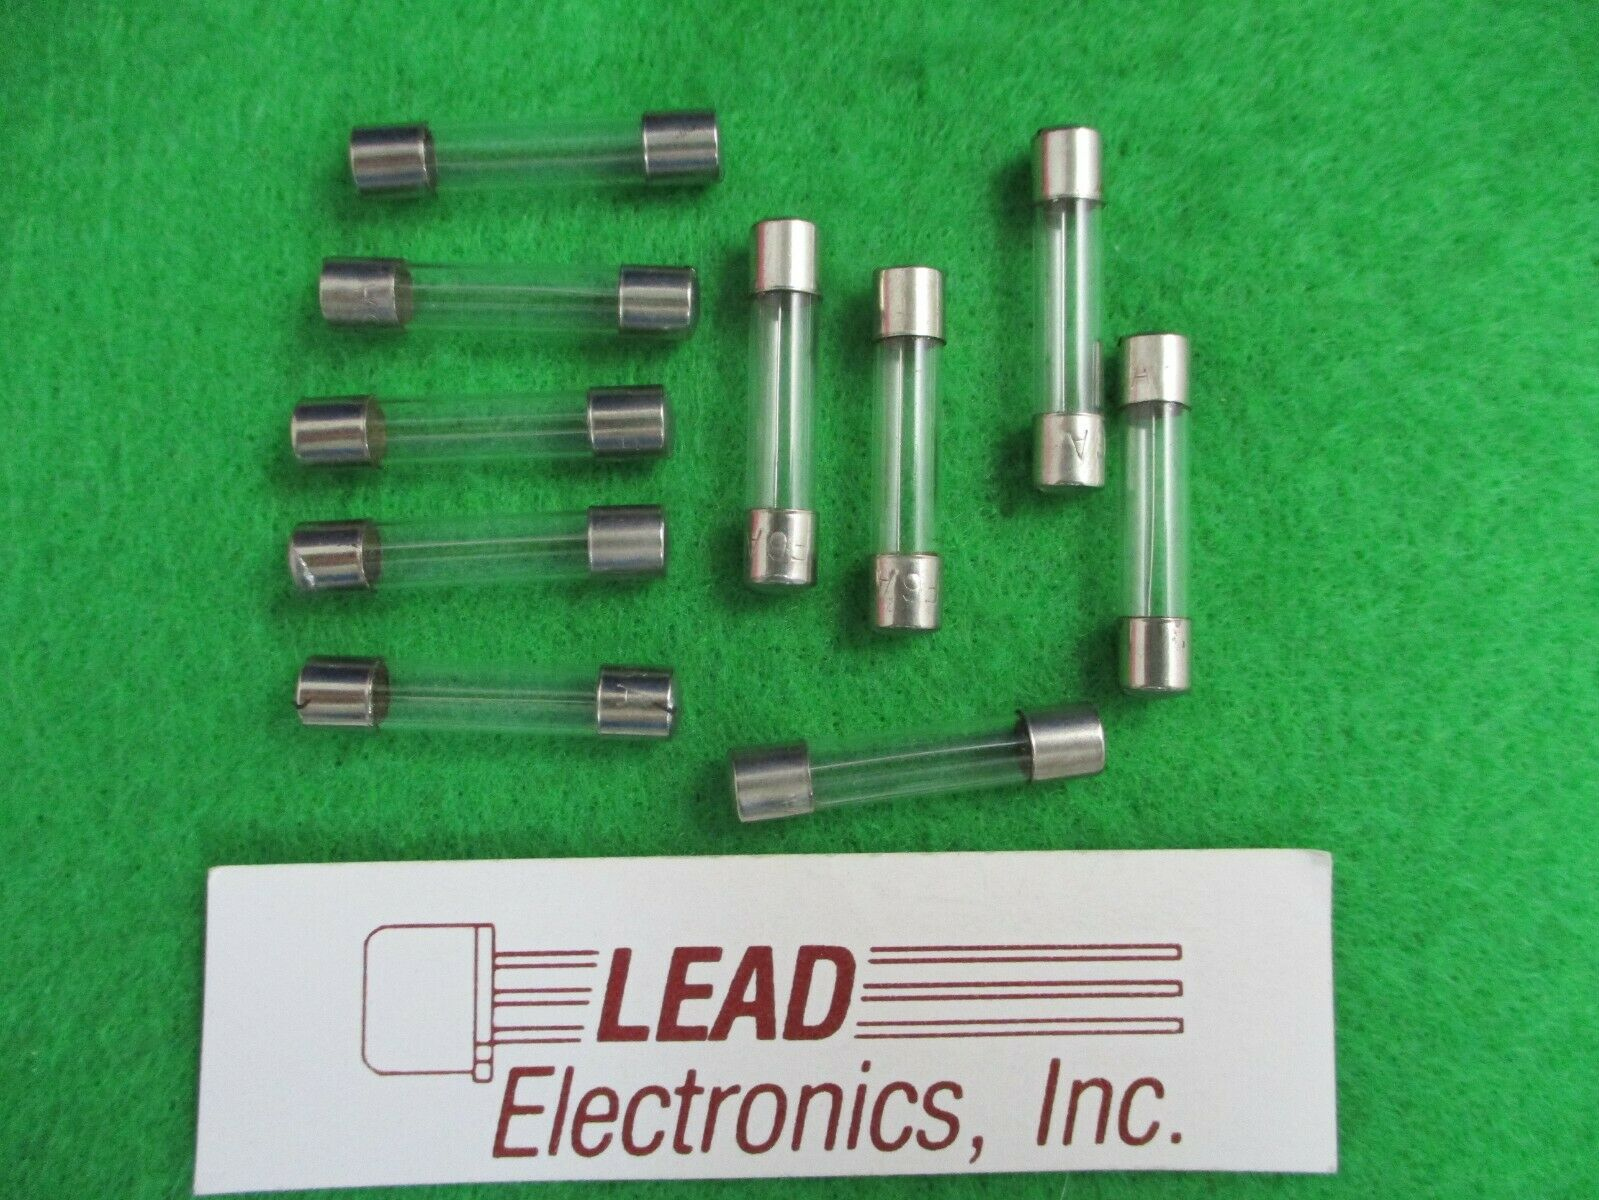 QTY 10 FUSE 25-AMP 6MM X 30MM EQUAL TO ABC-25 0314025 CERAMIC FAST ACTING